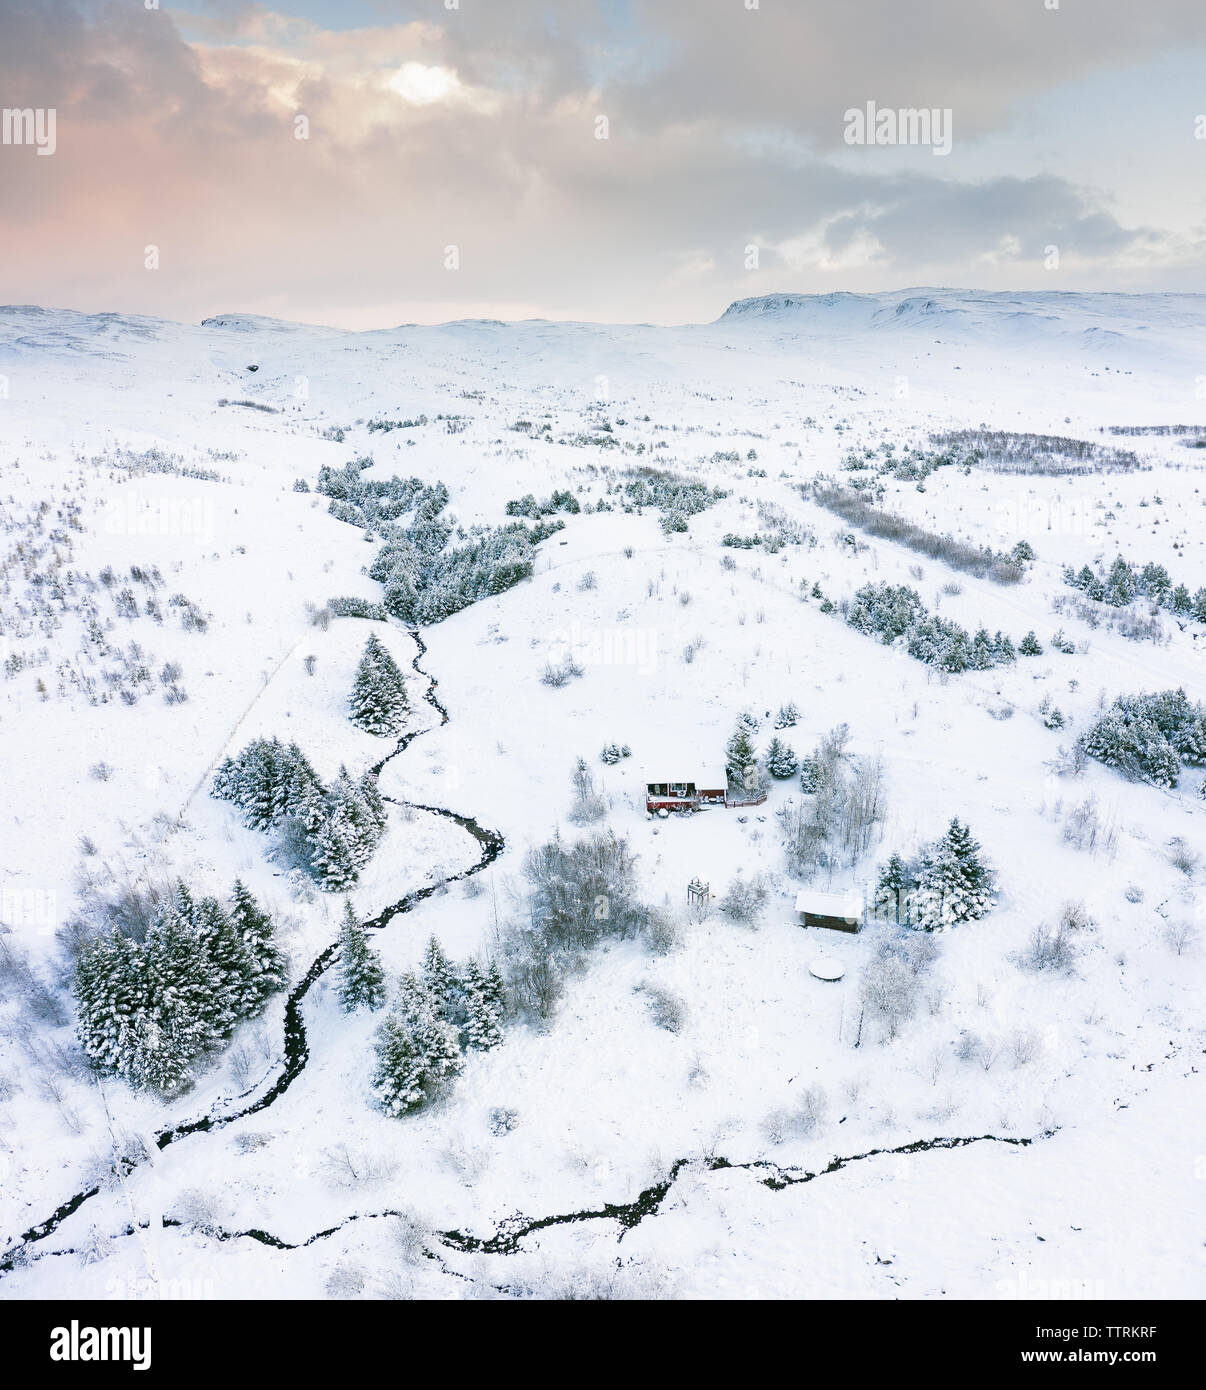 Drone view of picturesque country houses near narrow river between coniferous woods and wild lands in snow in winter - Stock Image